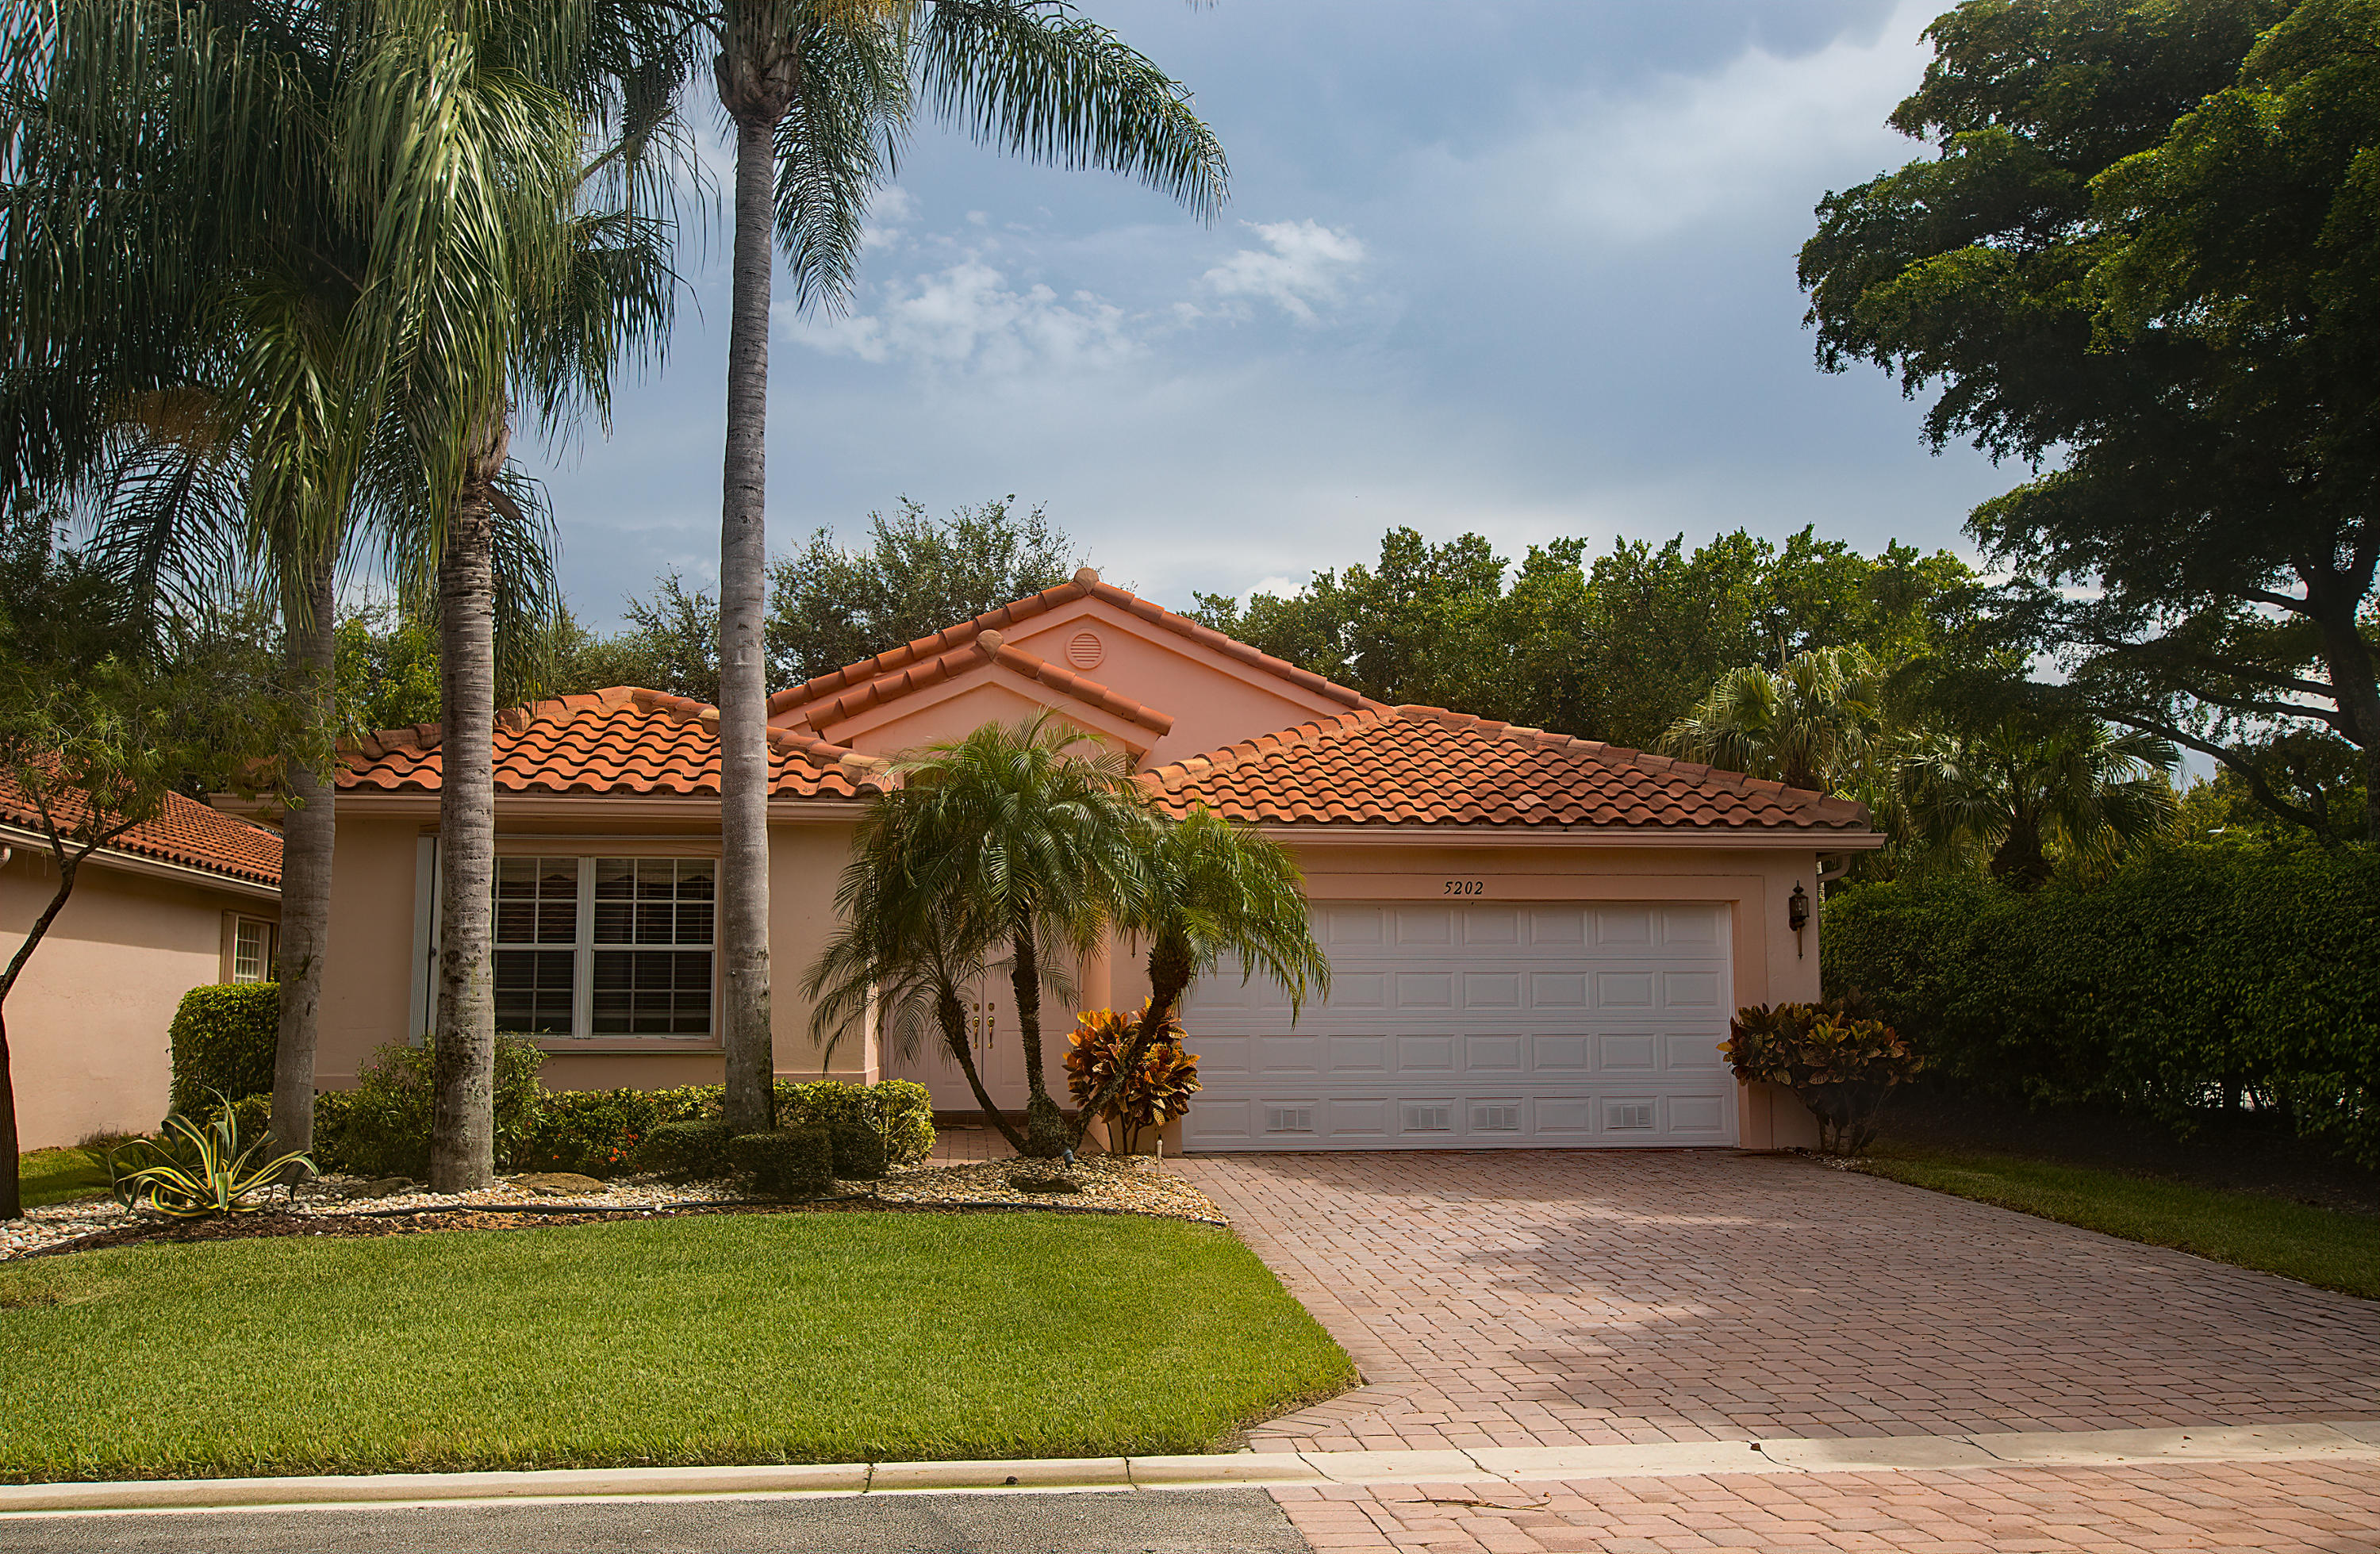 Photo of 5202 Polly Park Lane, Boynton Beach, FL 33437